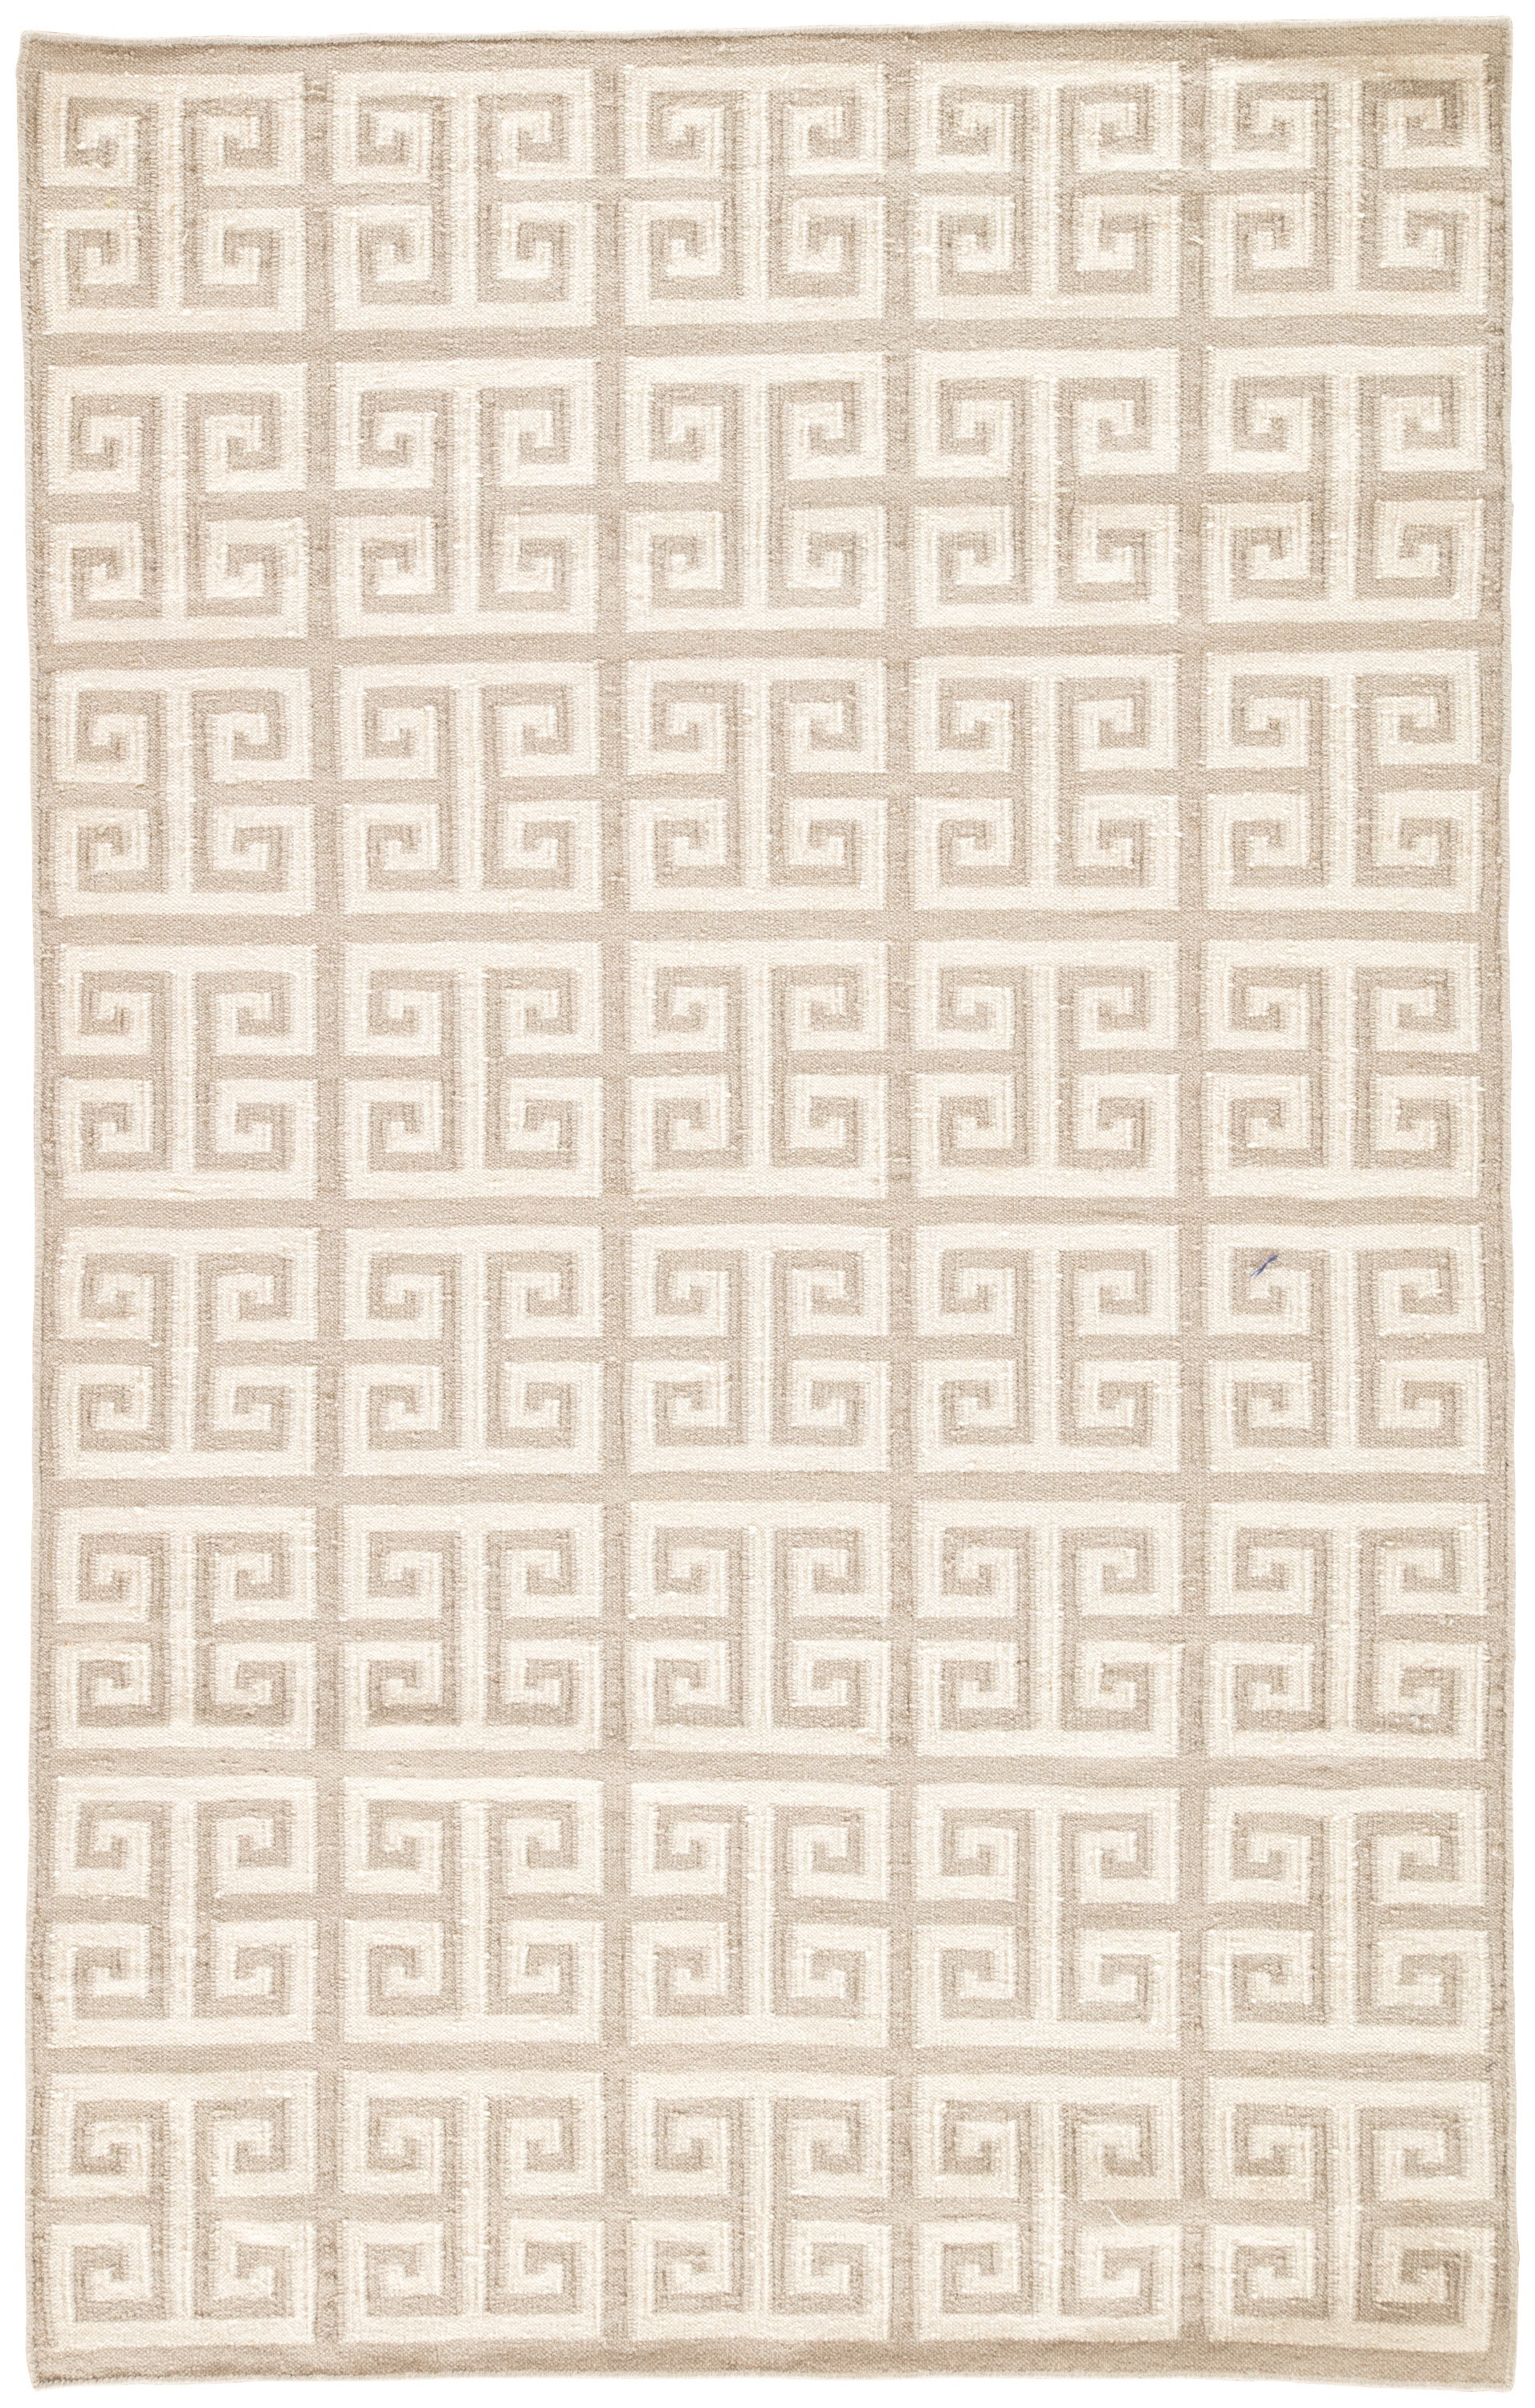 Rectangle Cream Geometric Dhurrie Wool Contemporary recommended for Bedroom, Bathroom, Dining Room, Office, Hallway, Living Room